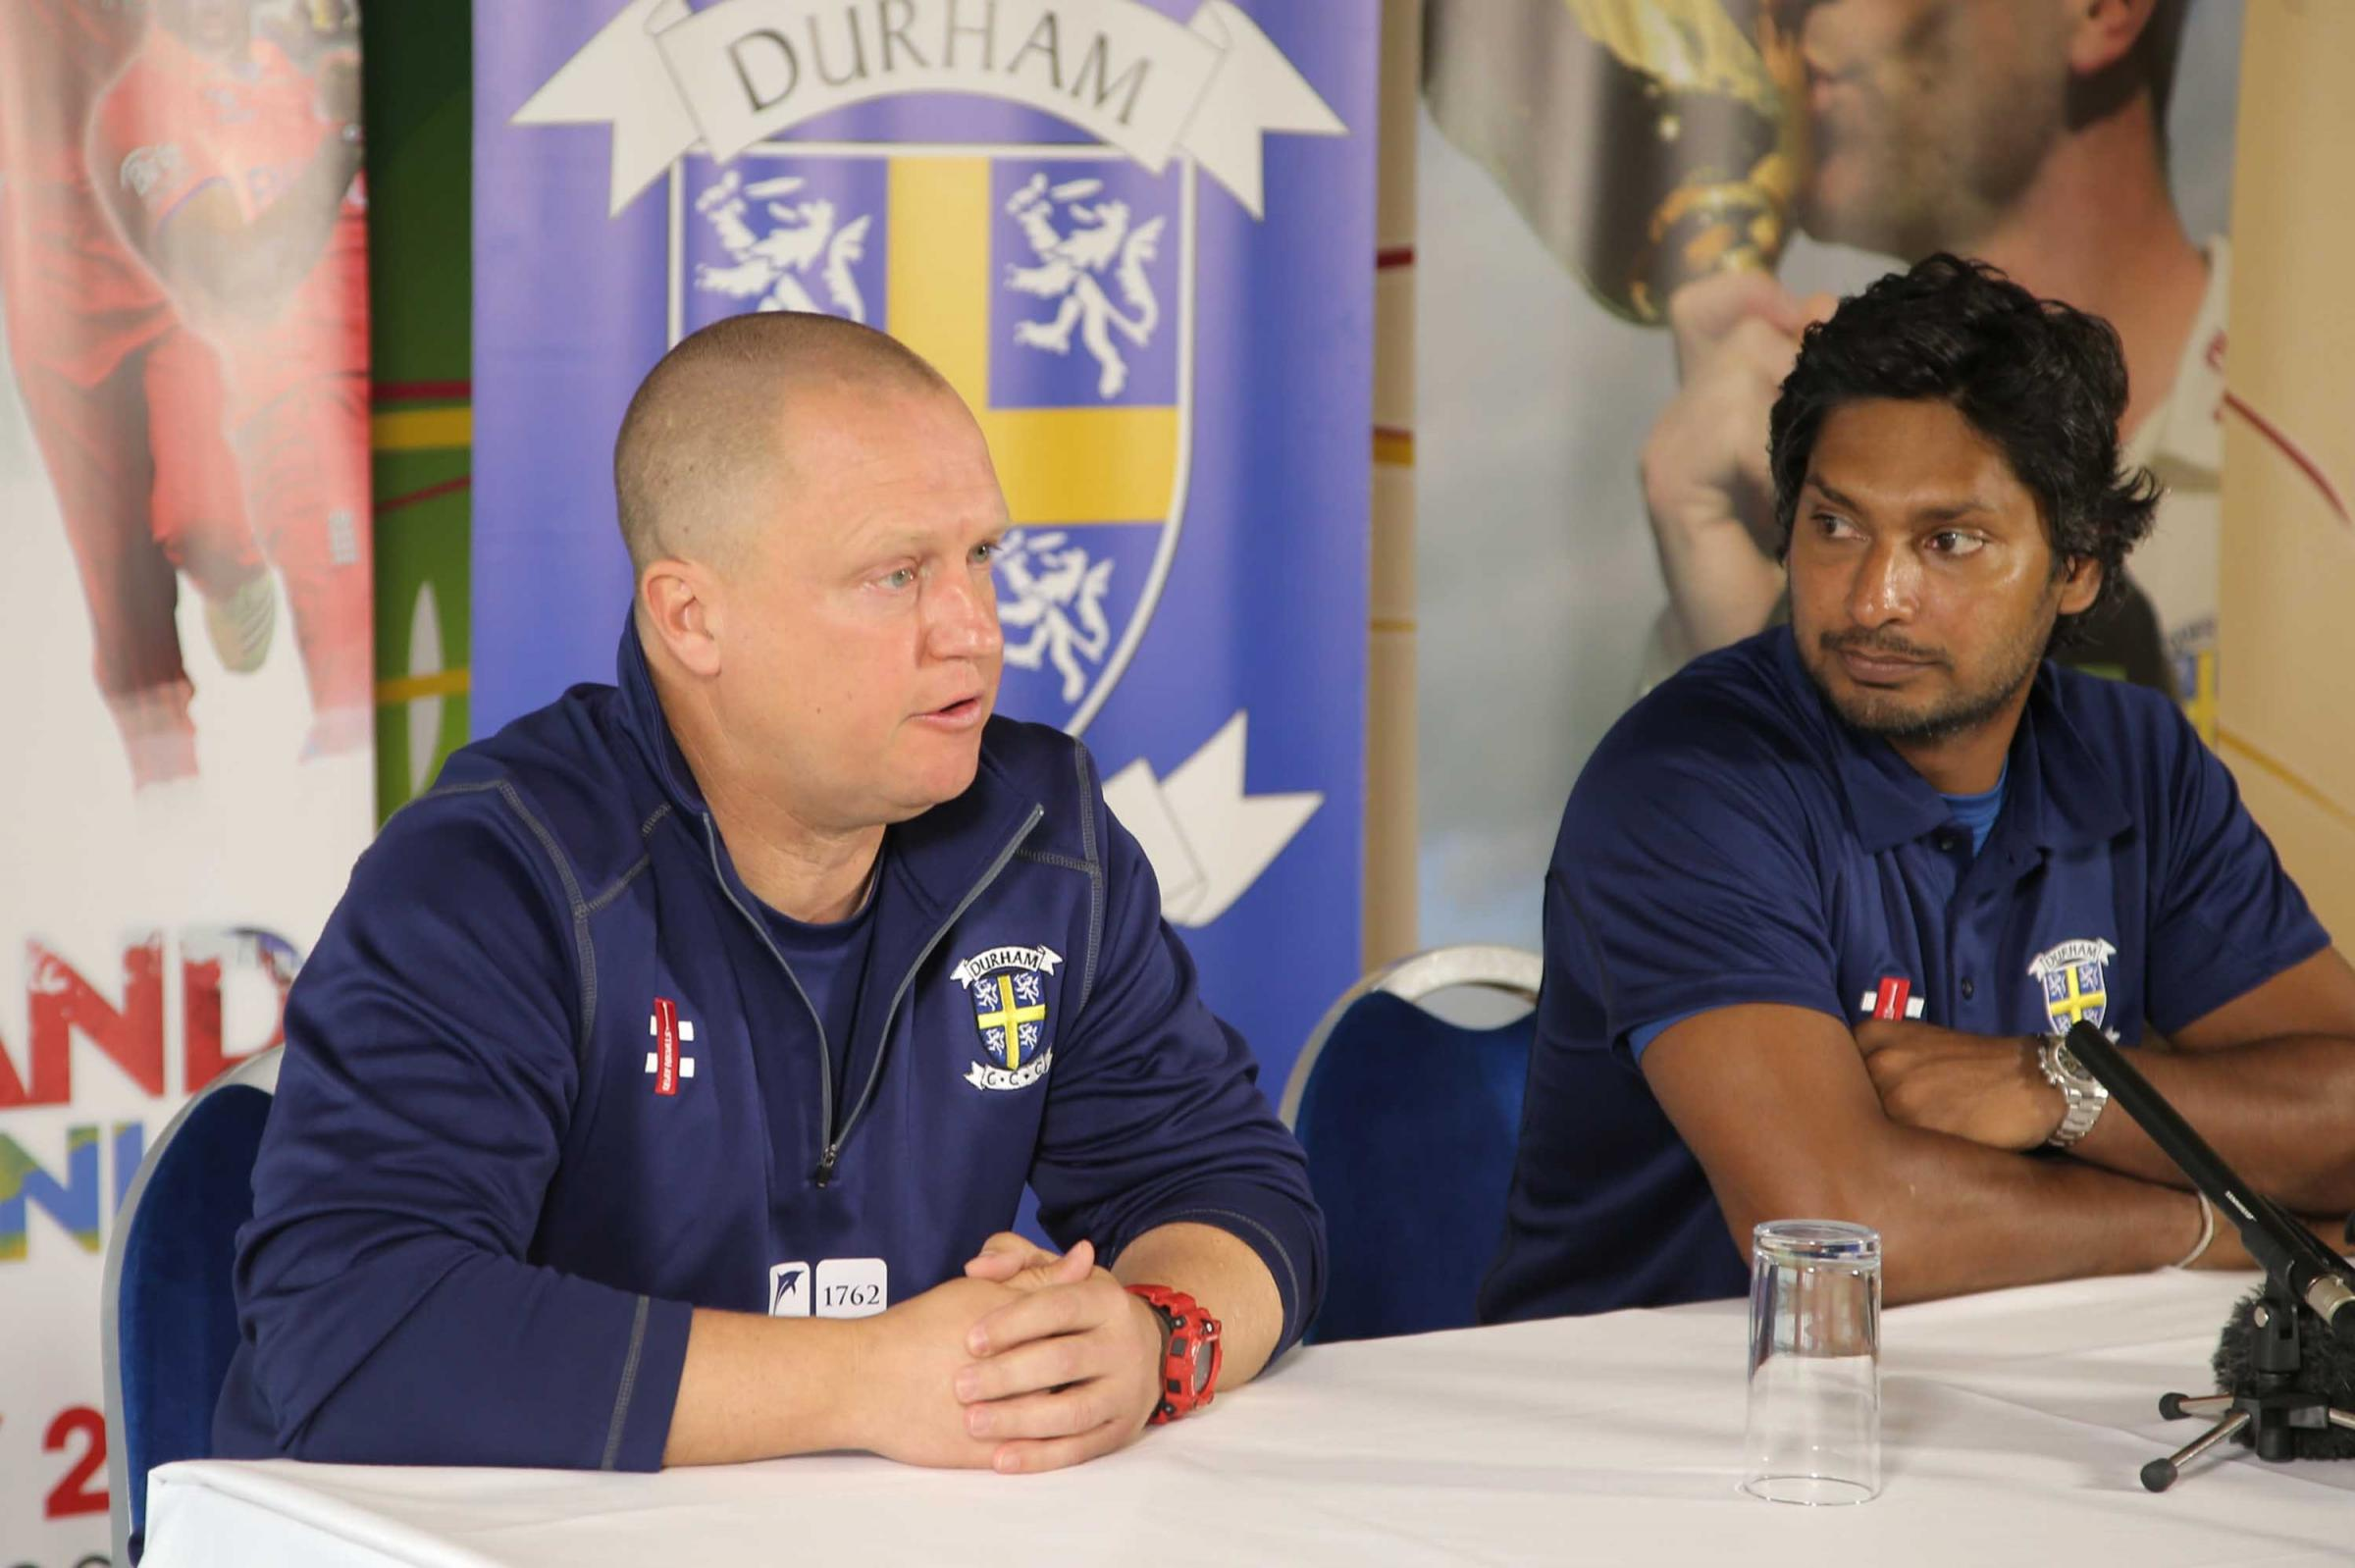 Kumar Sangakkara, right, the new signing for Durham Cricket team pictured at Chester-le-Street pictured at the press conference with coach Jon Lewis..Pic: Andy Lamb 30.04.14.